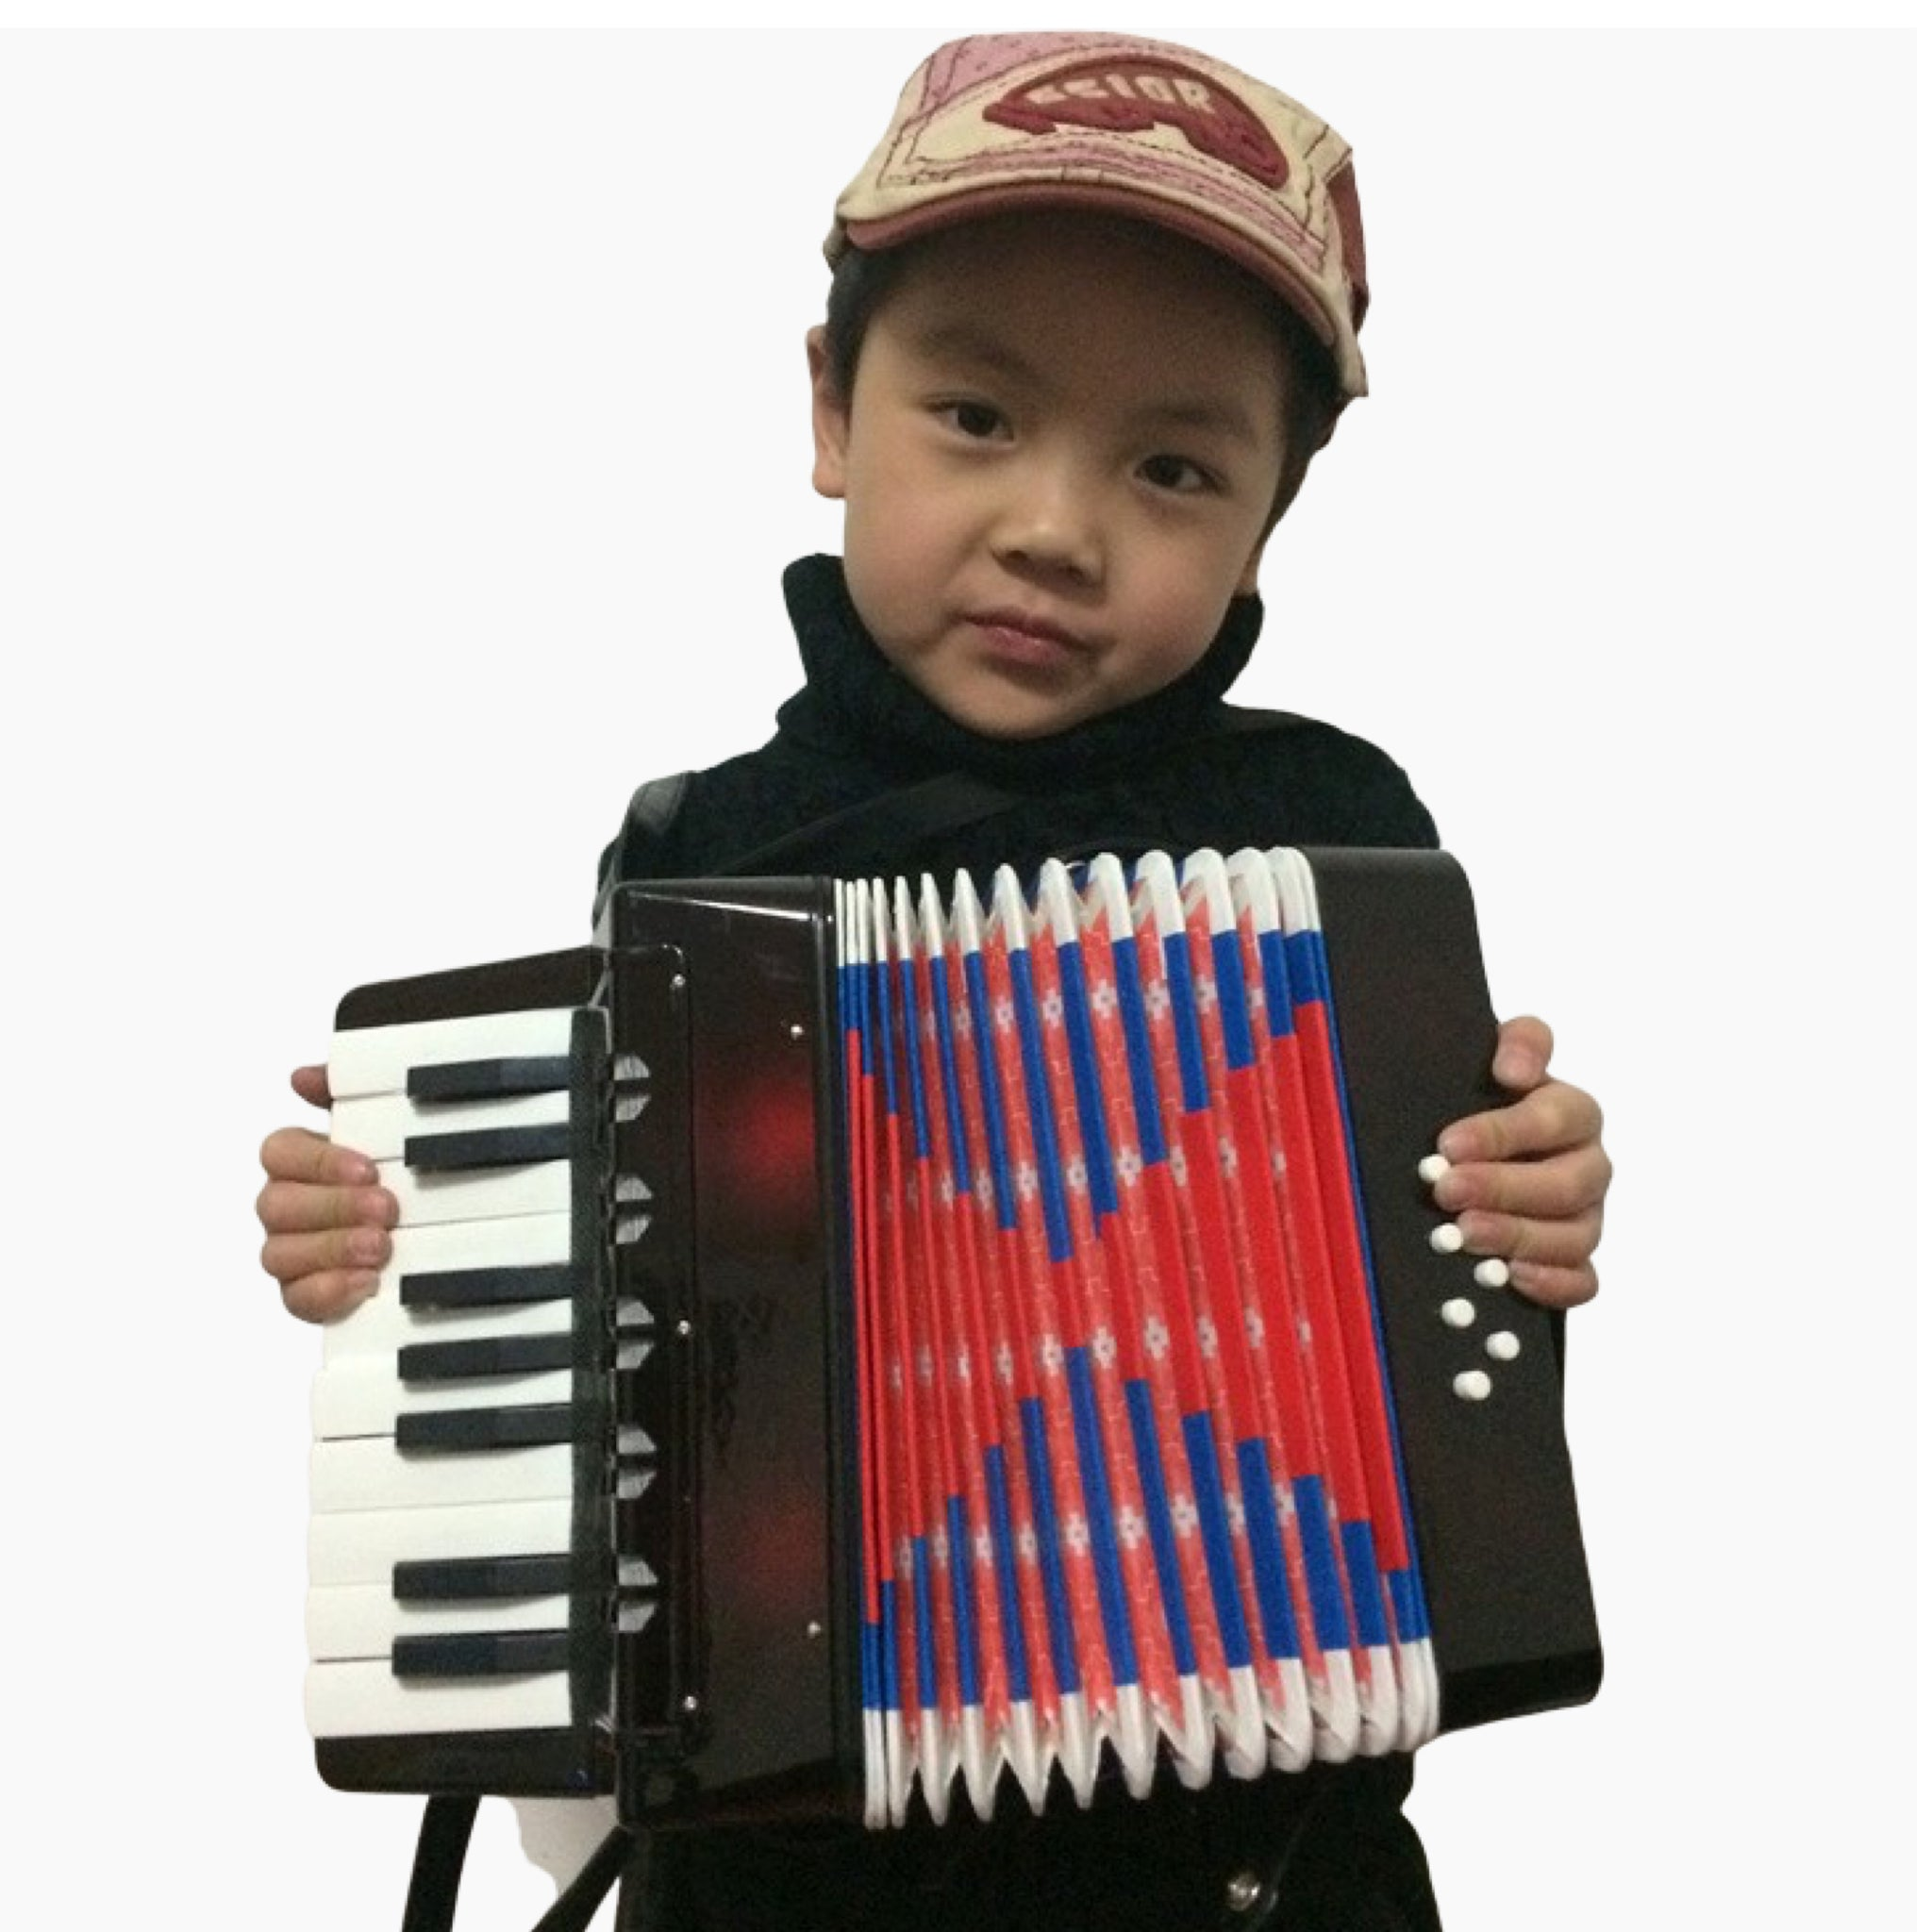 Mini Small Accordion 17-Key 8 Bass Educational Musical Instrument Rhythm Band Toy for Kids Children Gift Trend Style